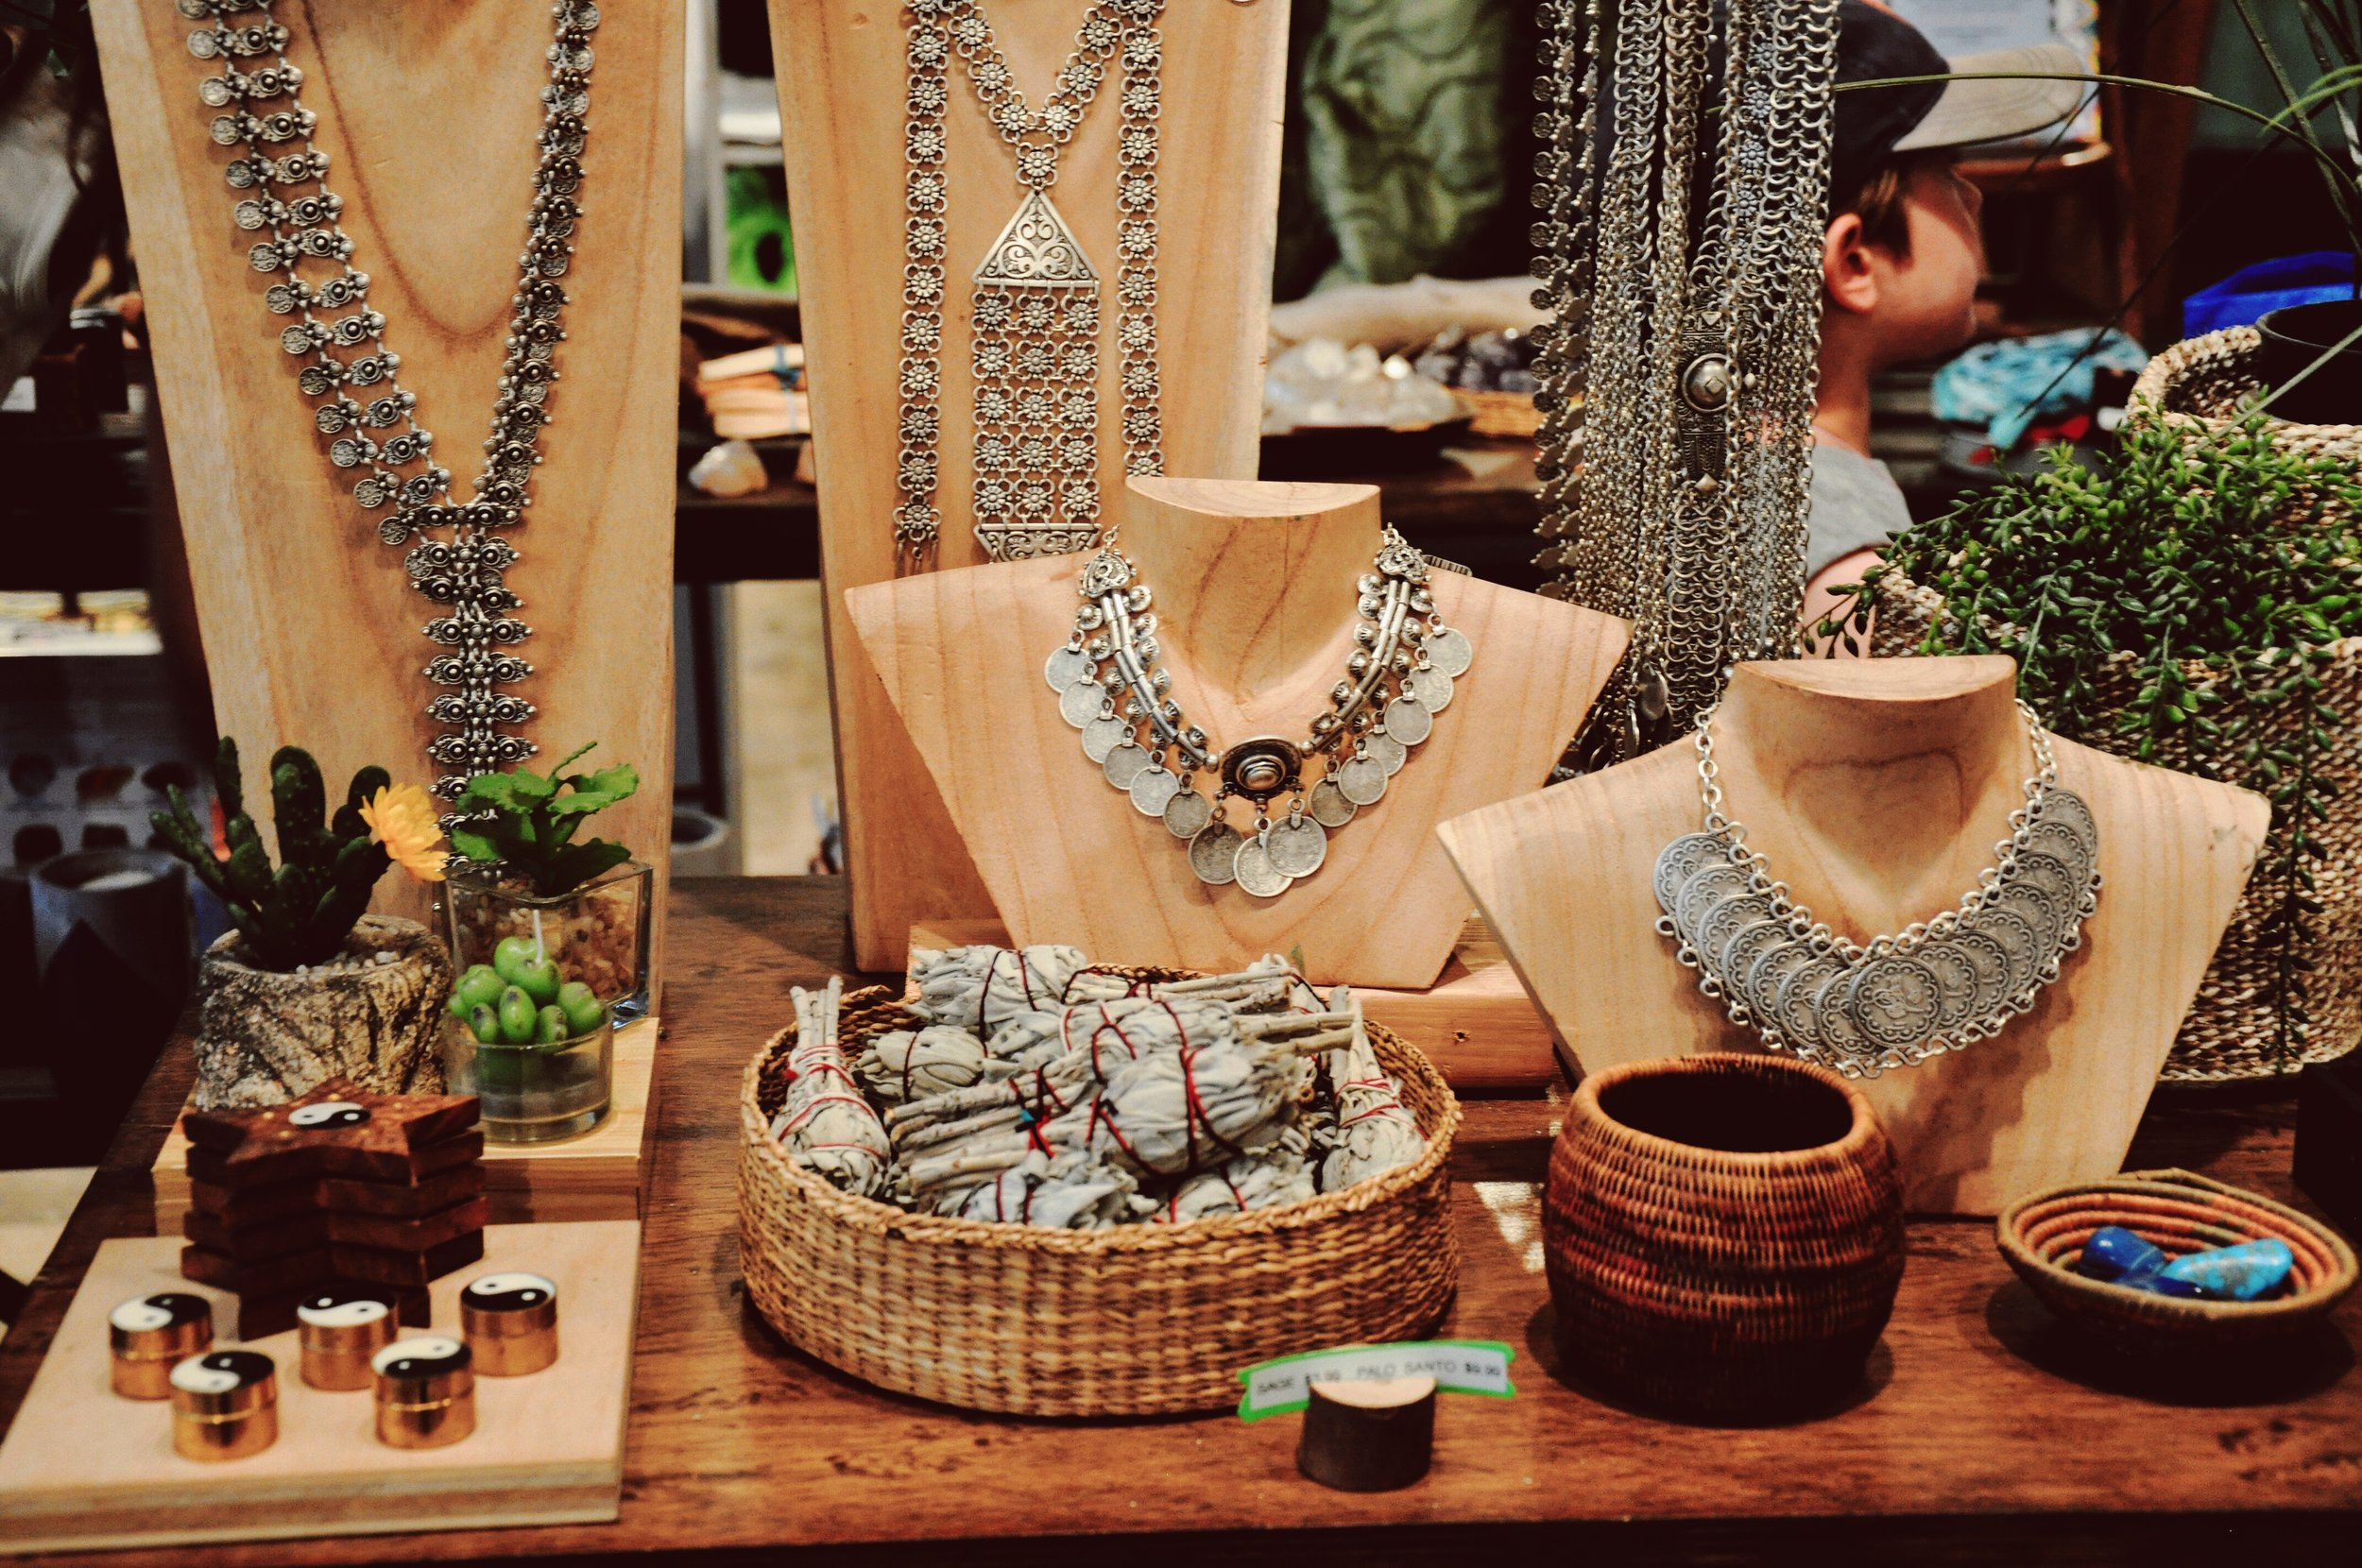 Jewelry, incense, trinkets, and succulents!